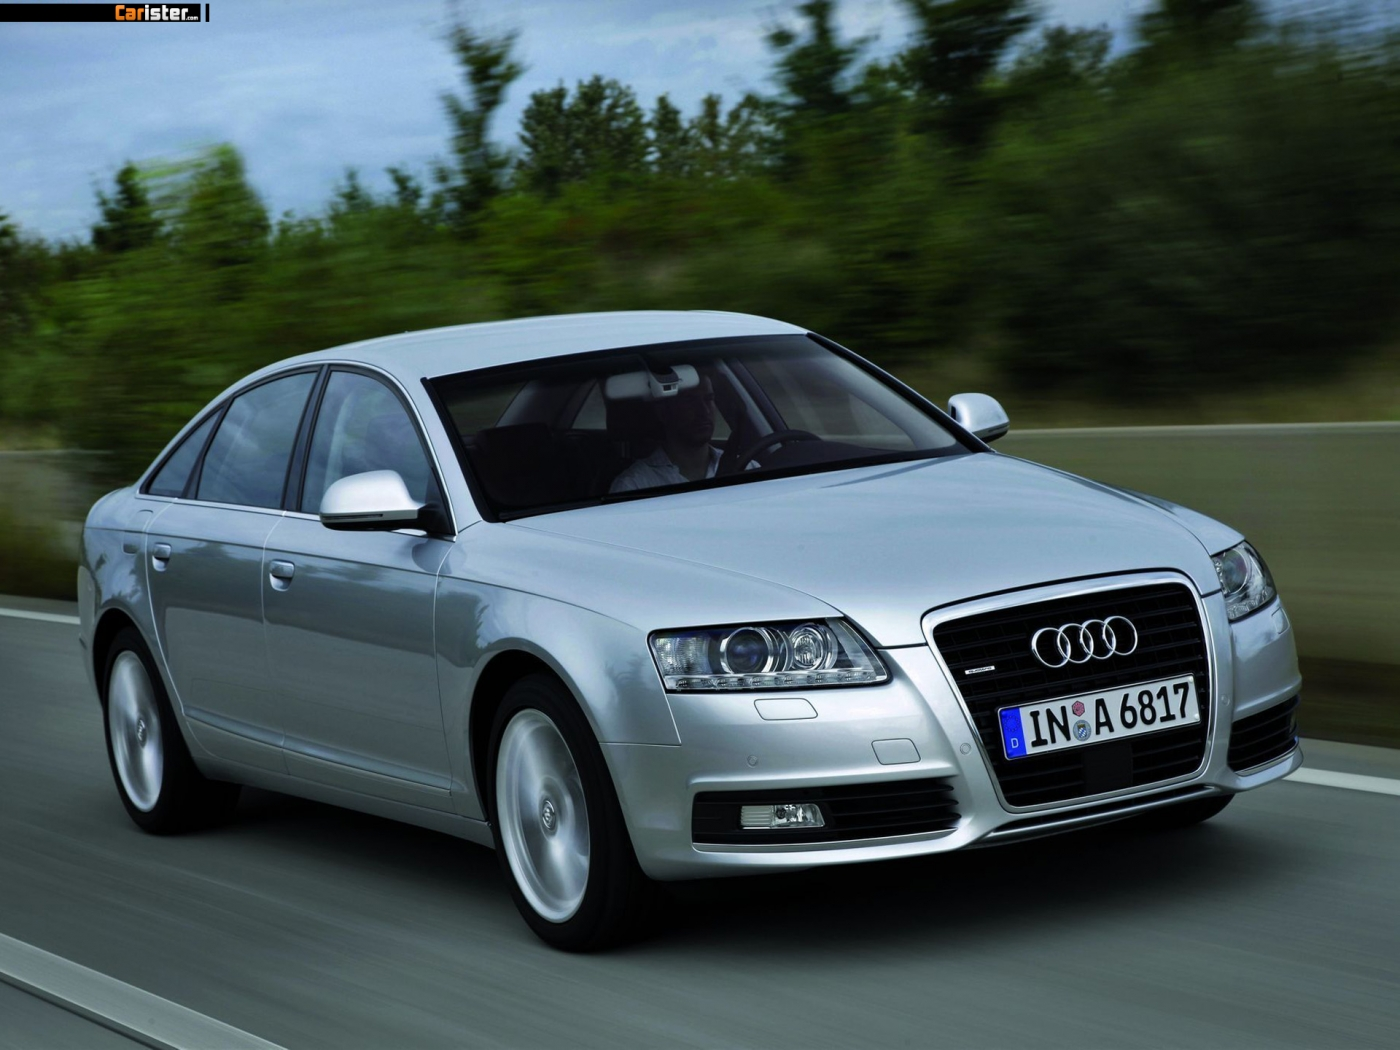 Audi A6 2009 - Photo 52 - Taille: 1400x1050